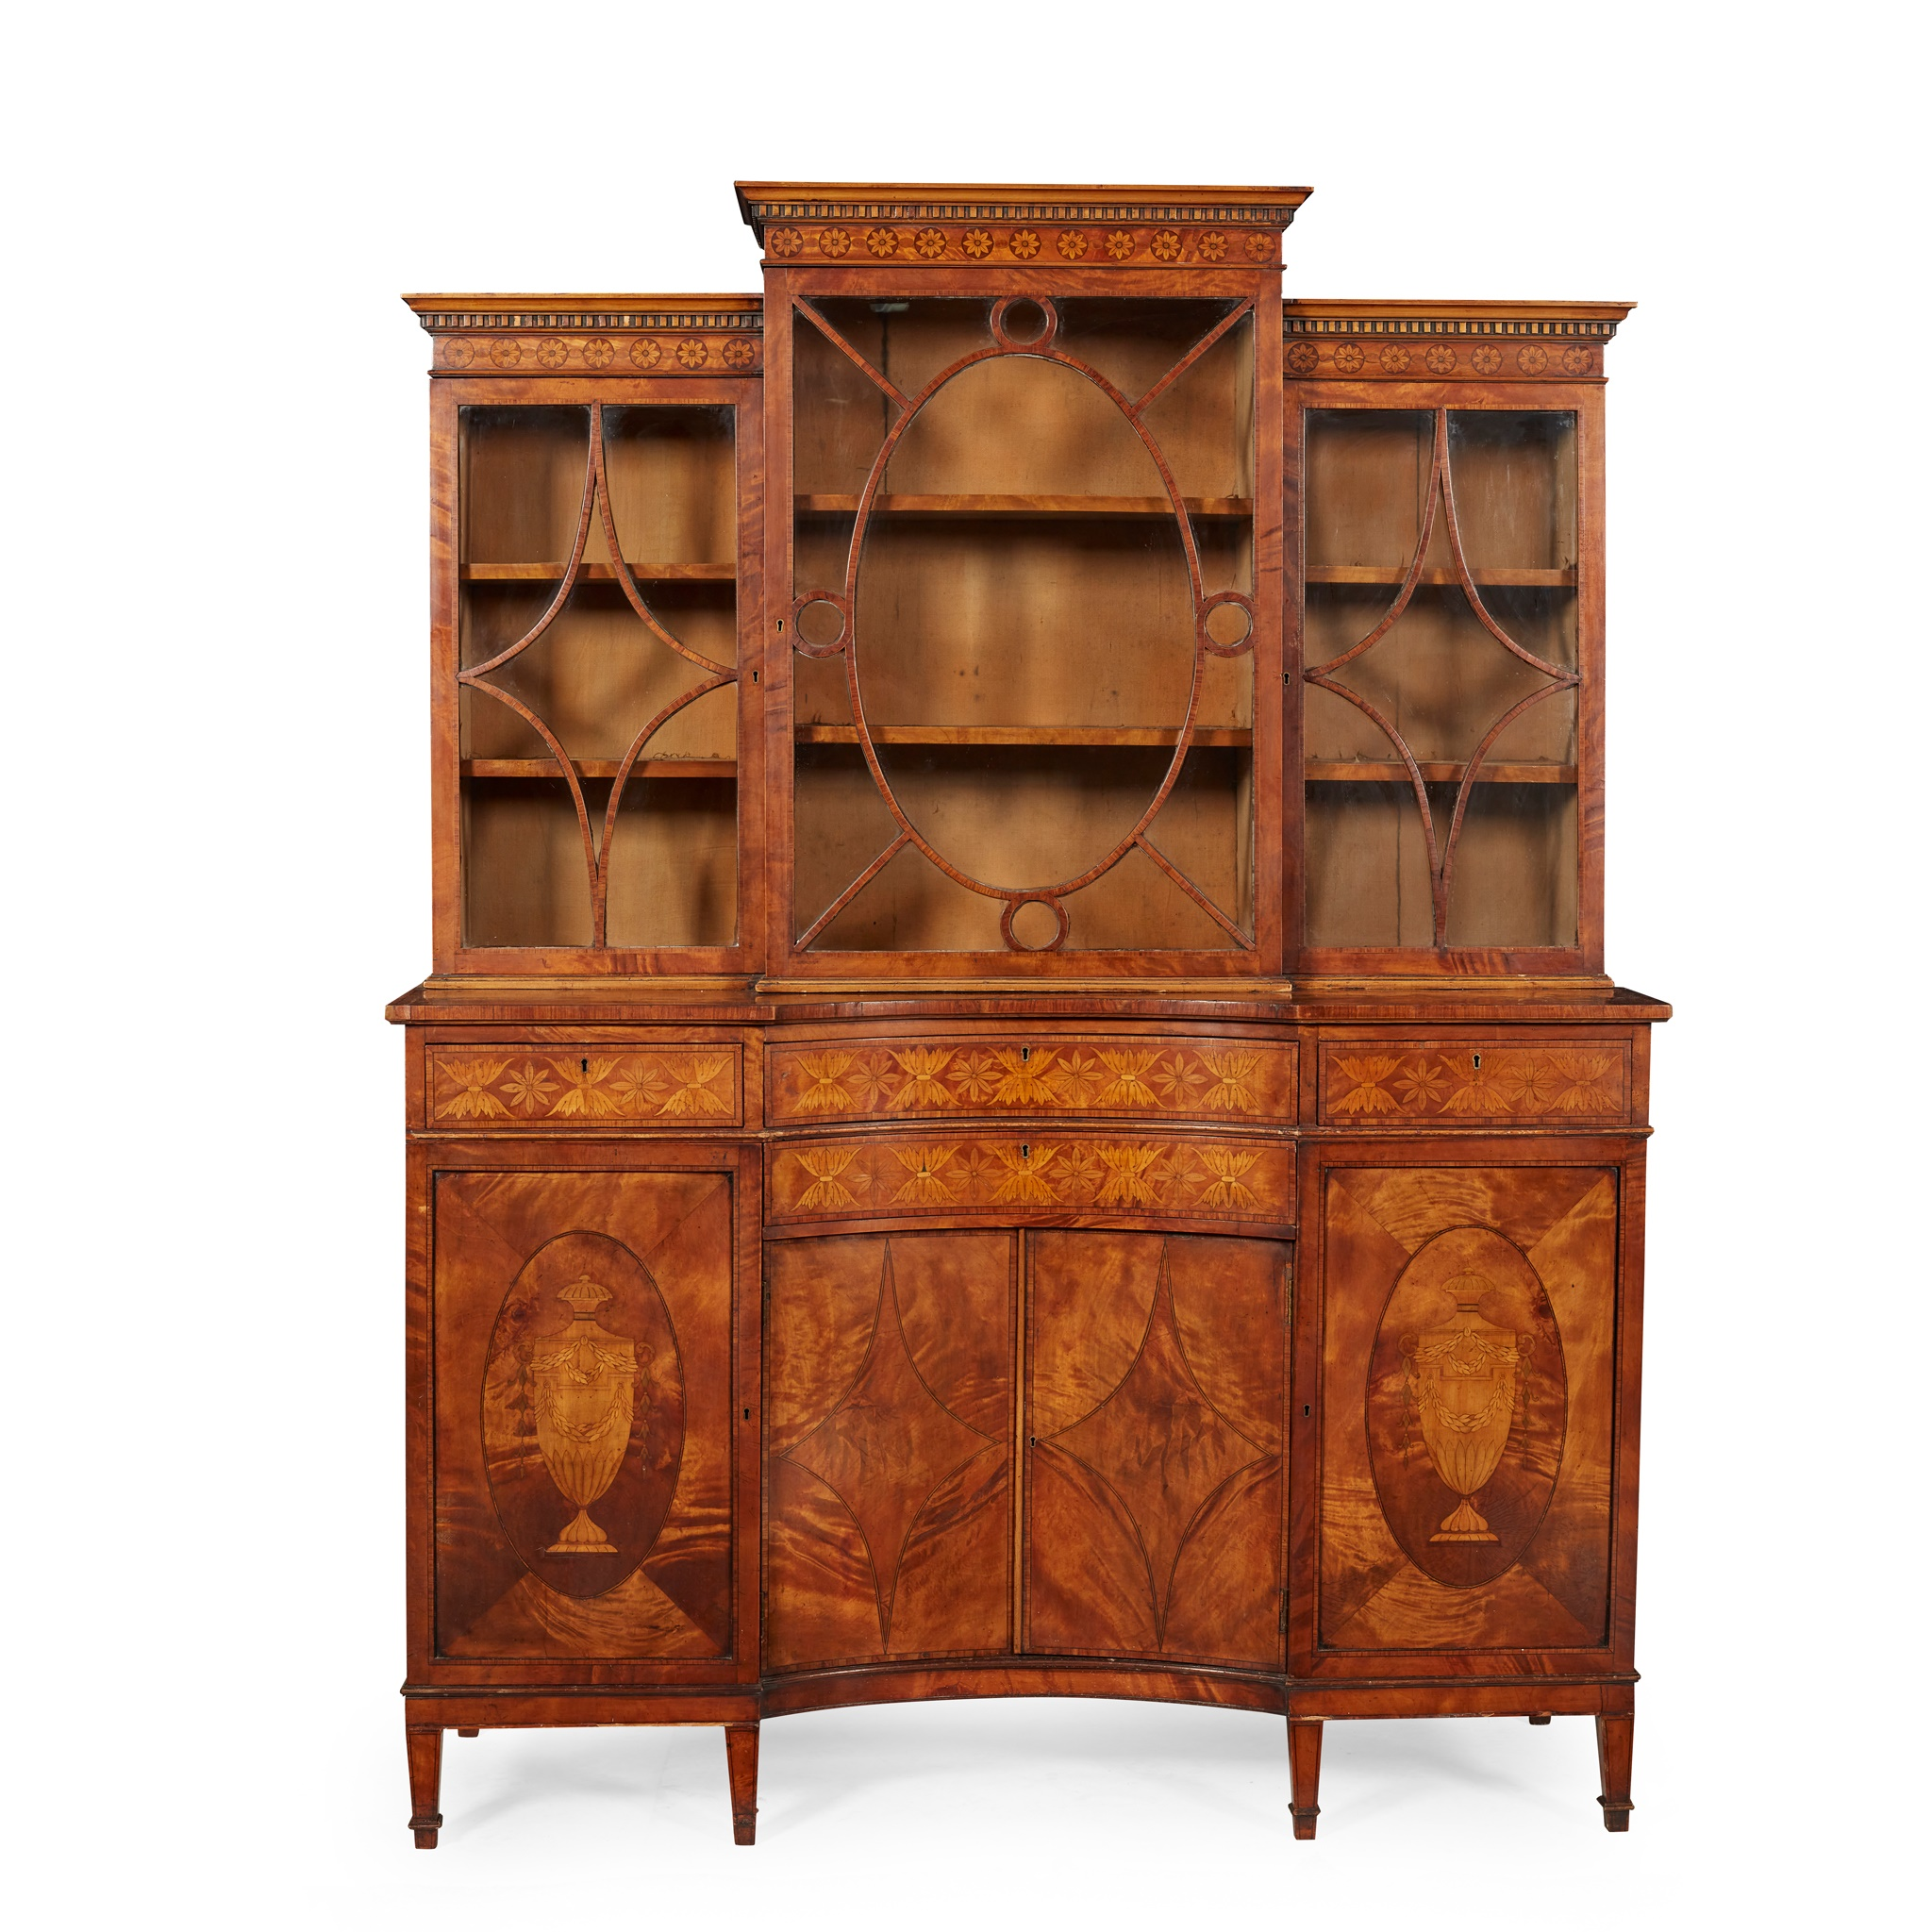 LATE GEORGE III SATINWOOD AND INLAID BOOKCASE, IN THE MANNER OF WILLIAM MOORE OF DUBLIN LATE 18TH